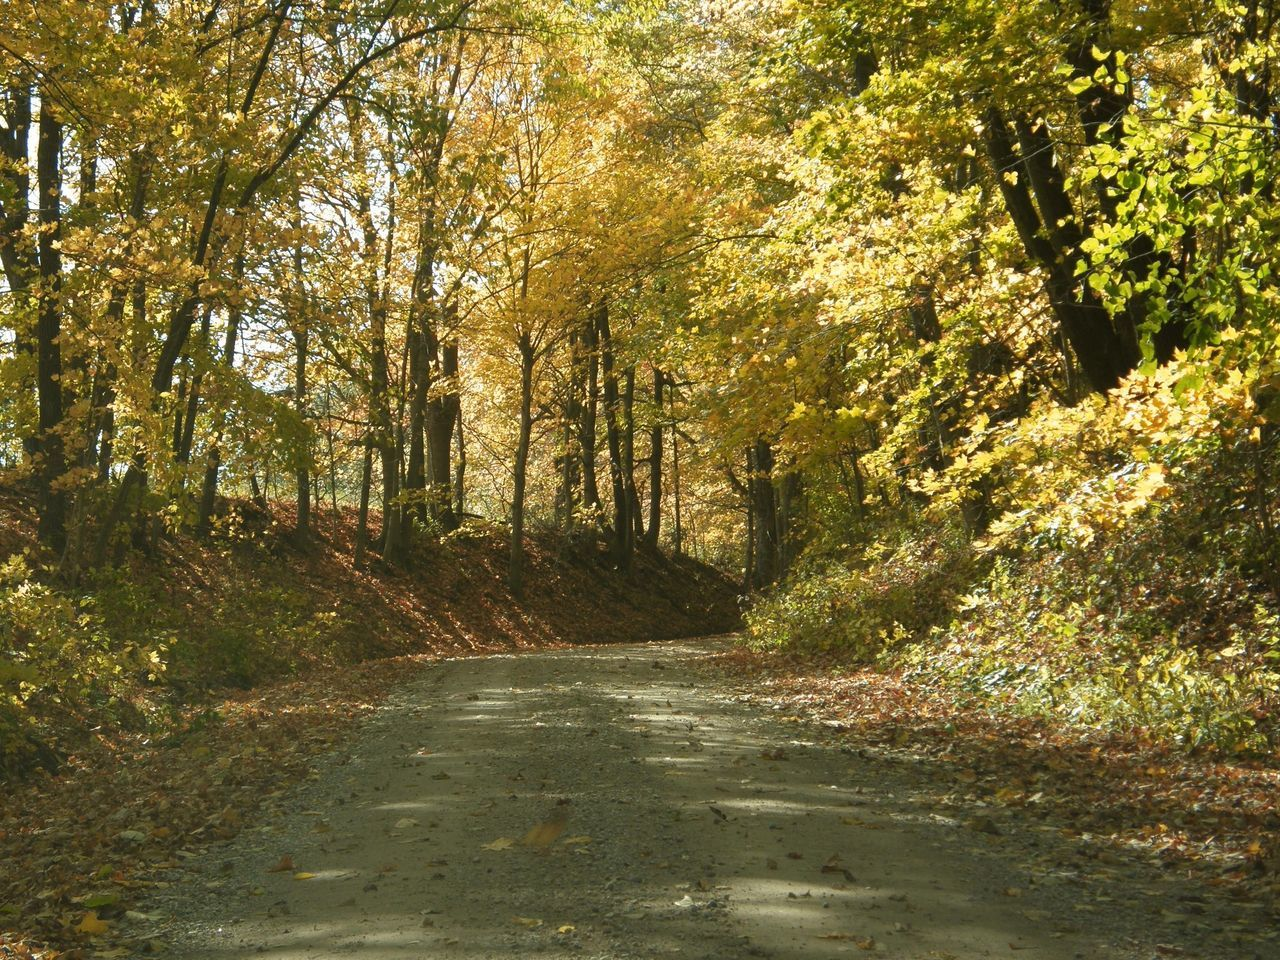 tree, forest, nature, tranquility, autumn, day, the way forward, no people, road, outdoors, beauty in nature, scenics, growth